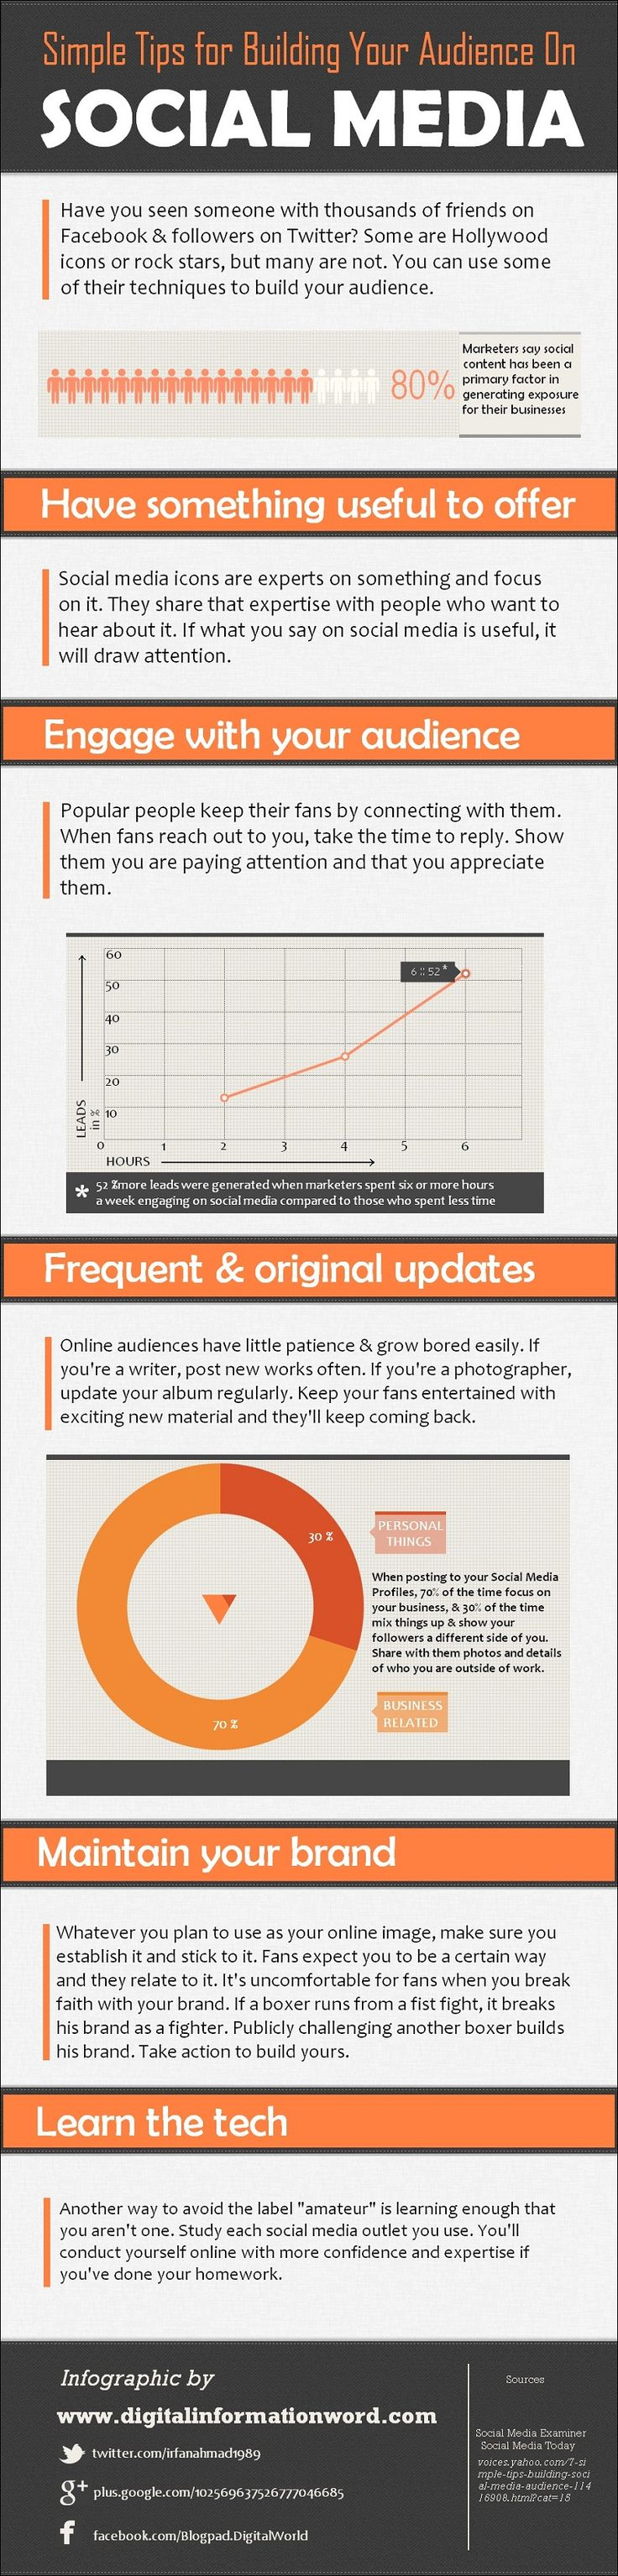 5 Strategies for Building Your Audience on Social Media #Infographic